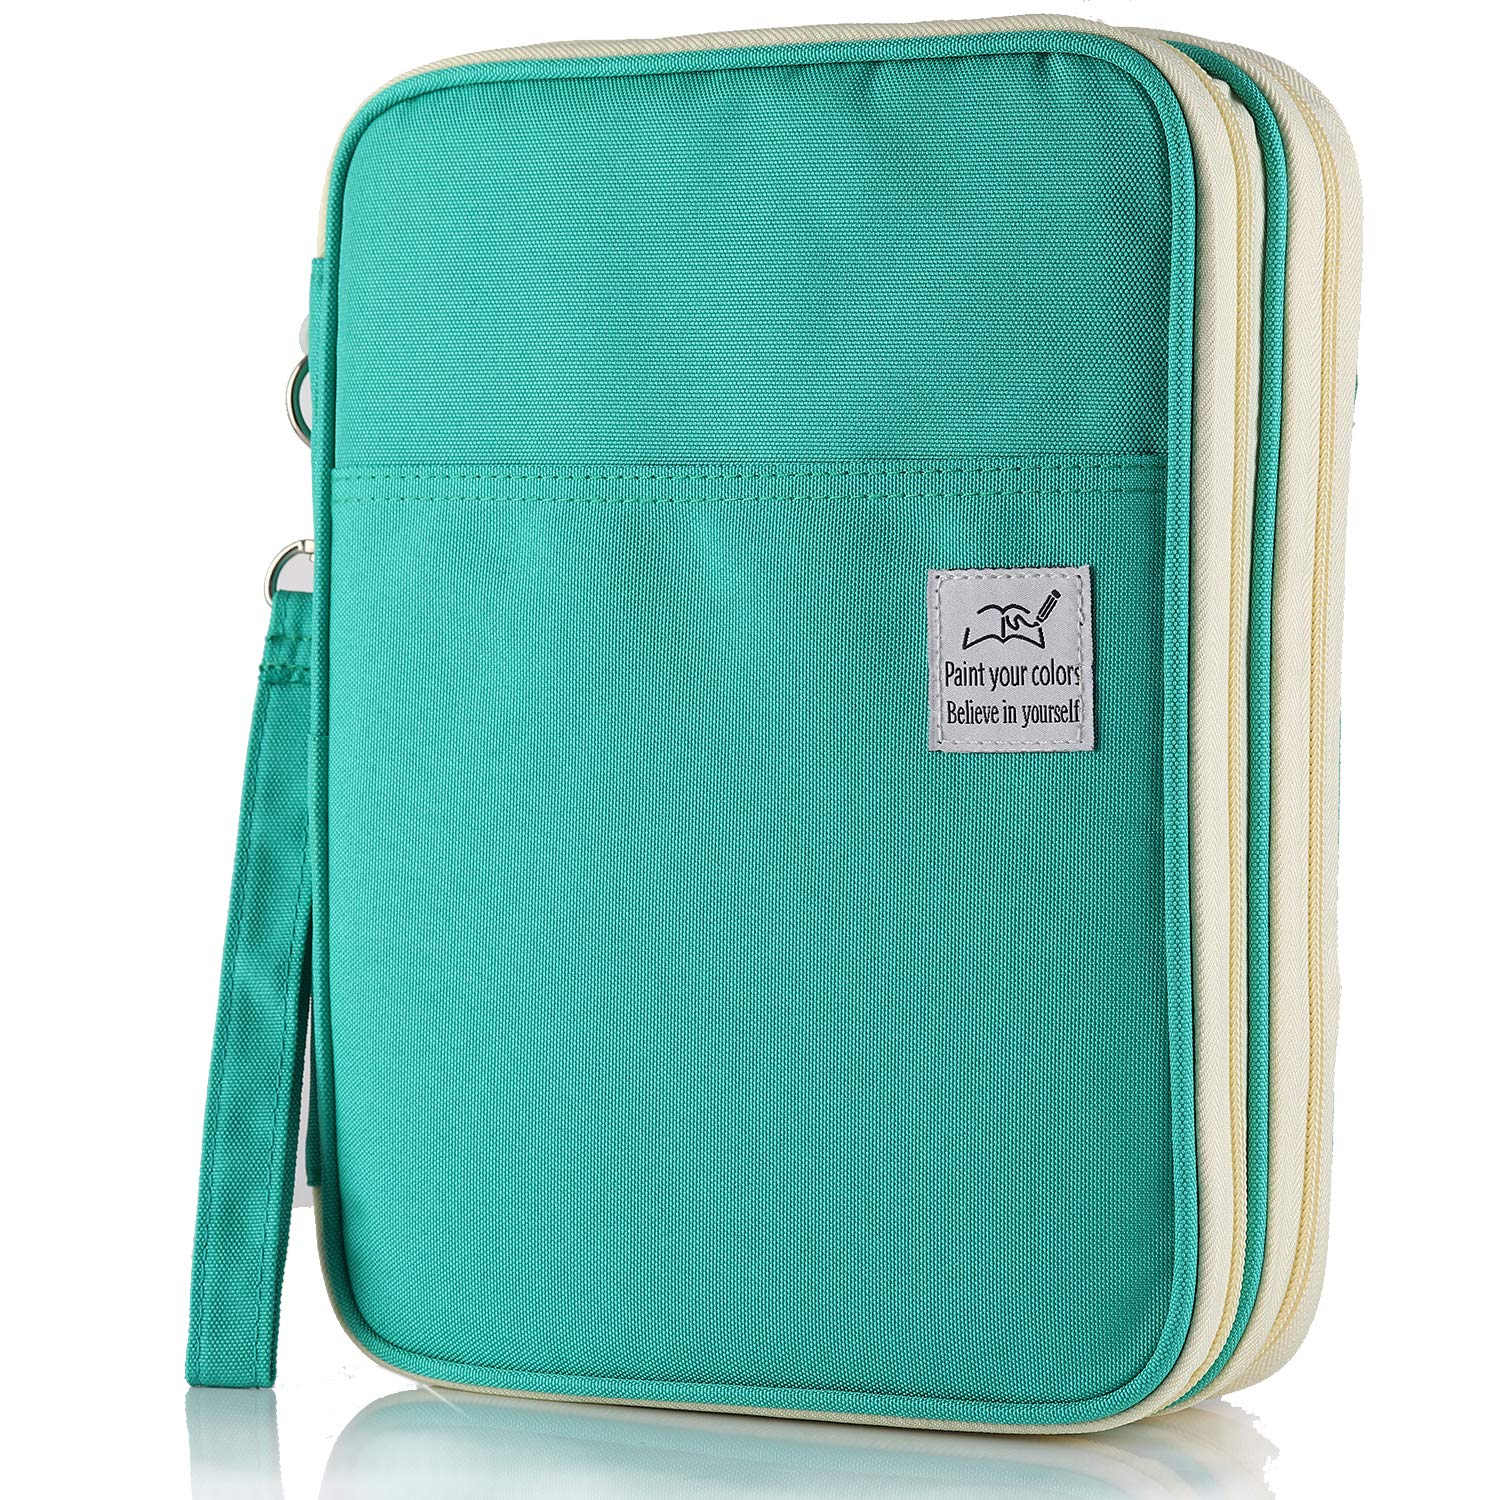 Shulaner Colored Pencil Case Slot Holds 192 Pencils or 144 Gel Pens with Zipper Closure Large Capacity Polyester Pen Organizer for Marker Watercolor Coloring Pencil Gel Pen (Green, 192)